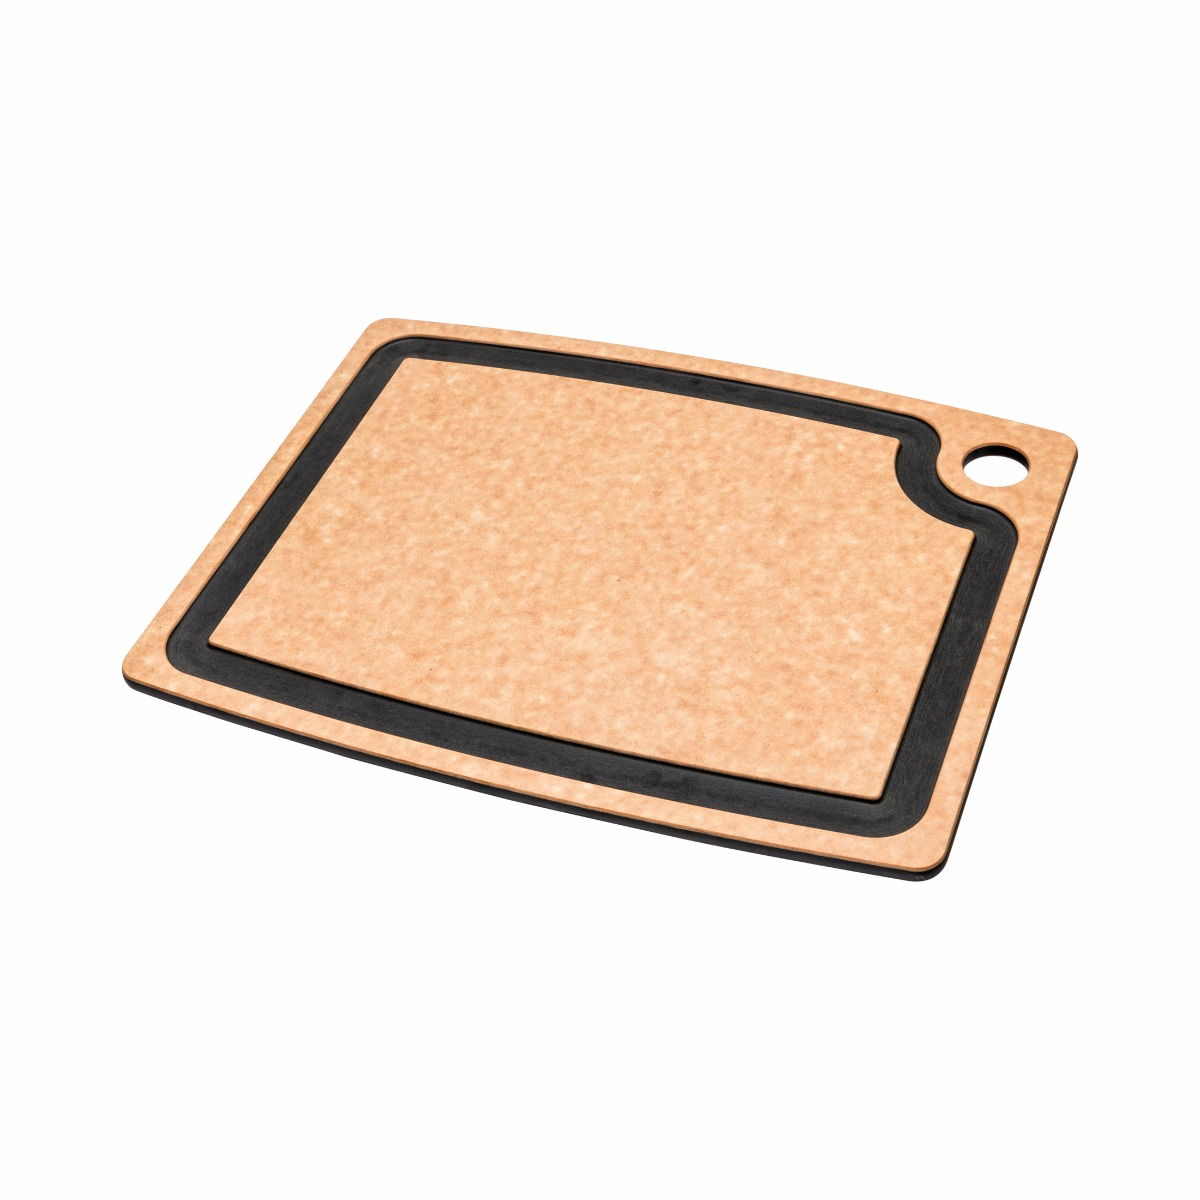 GOURMET Serving Board Natural